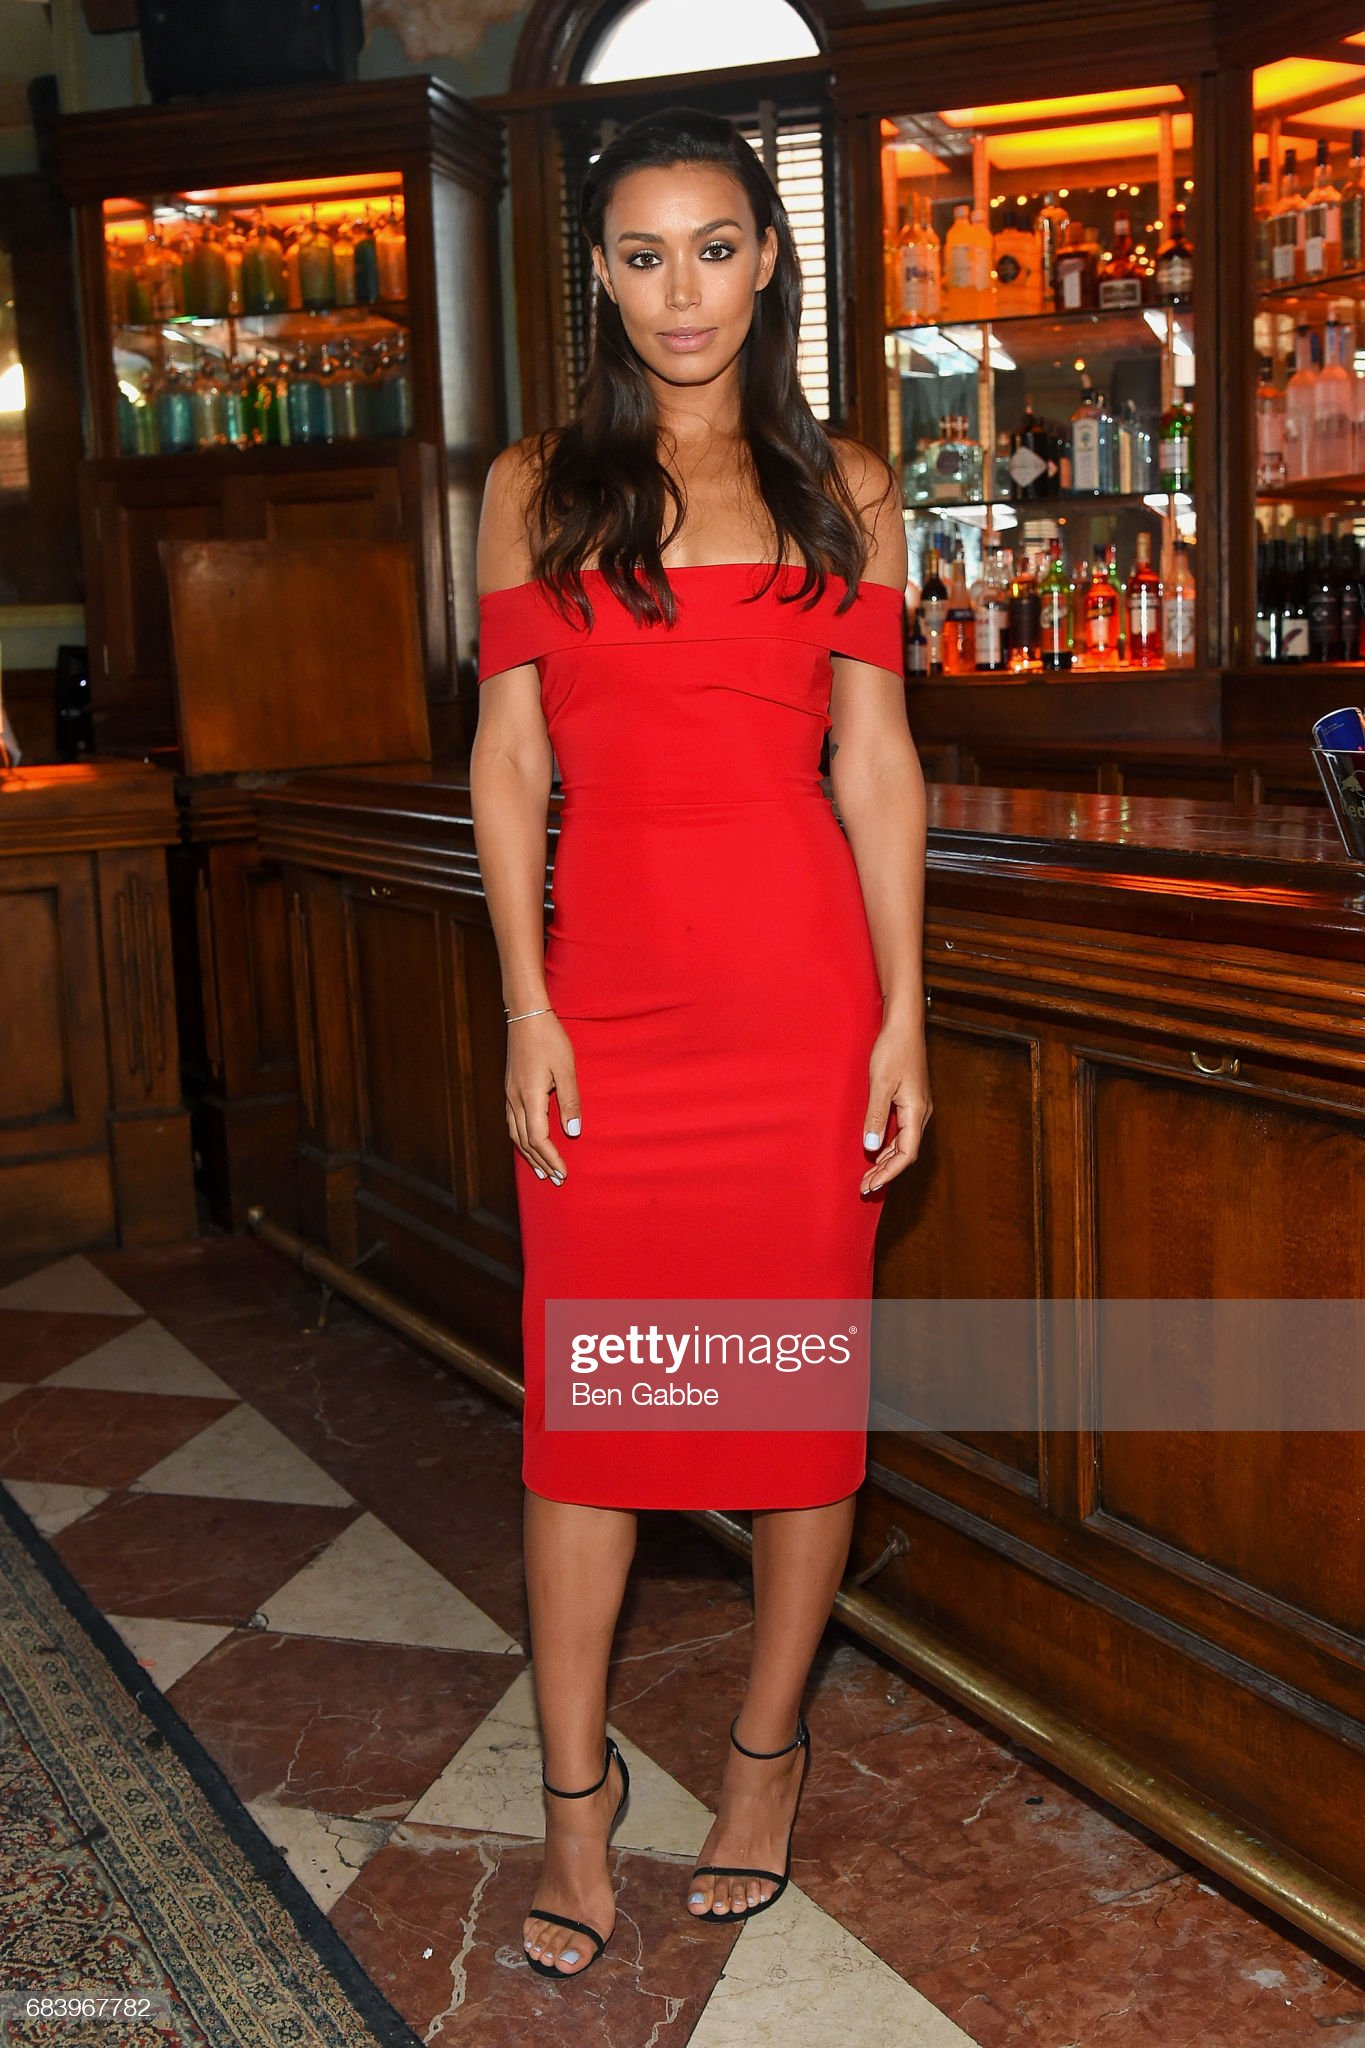 ¿Cuánto mide Ilfenesh Hadera? - Real height Actress-ilfenesh-hadera-attends-the-gersh-upfronts-party-at-the-jane-picture-id683967782?s=2048x2048